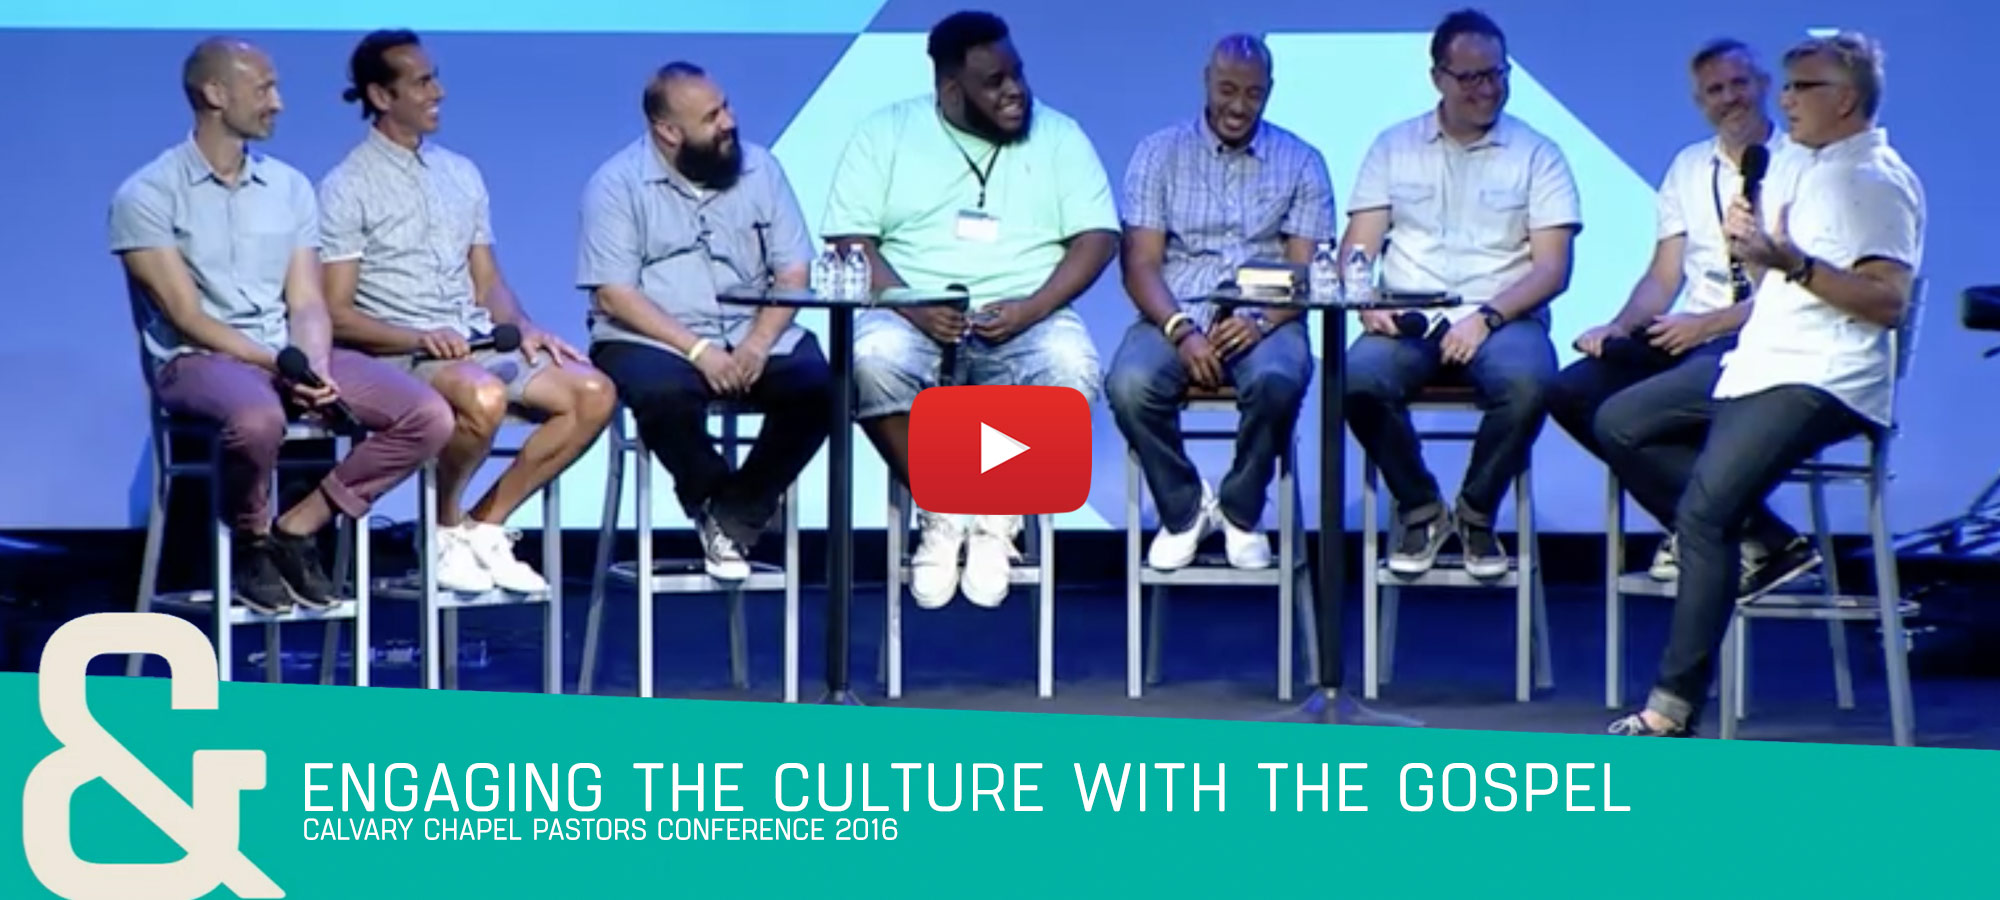 #ccpc16 - Engaging the Culture with the Gospel